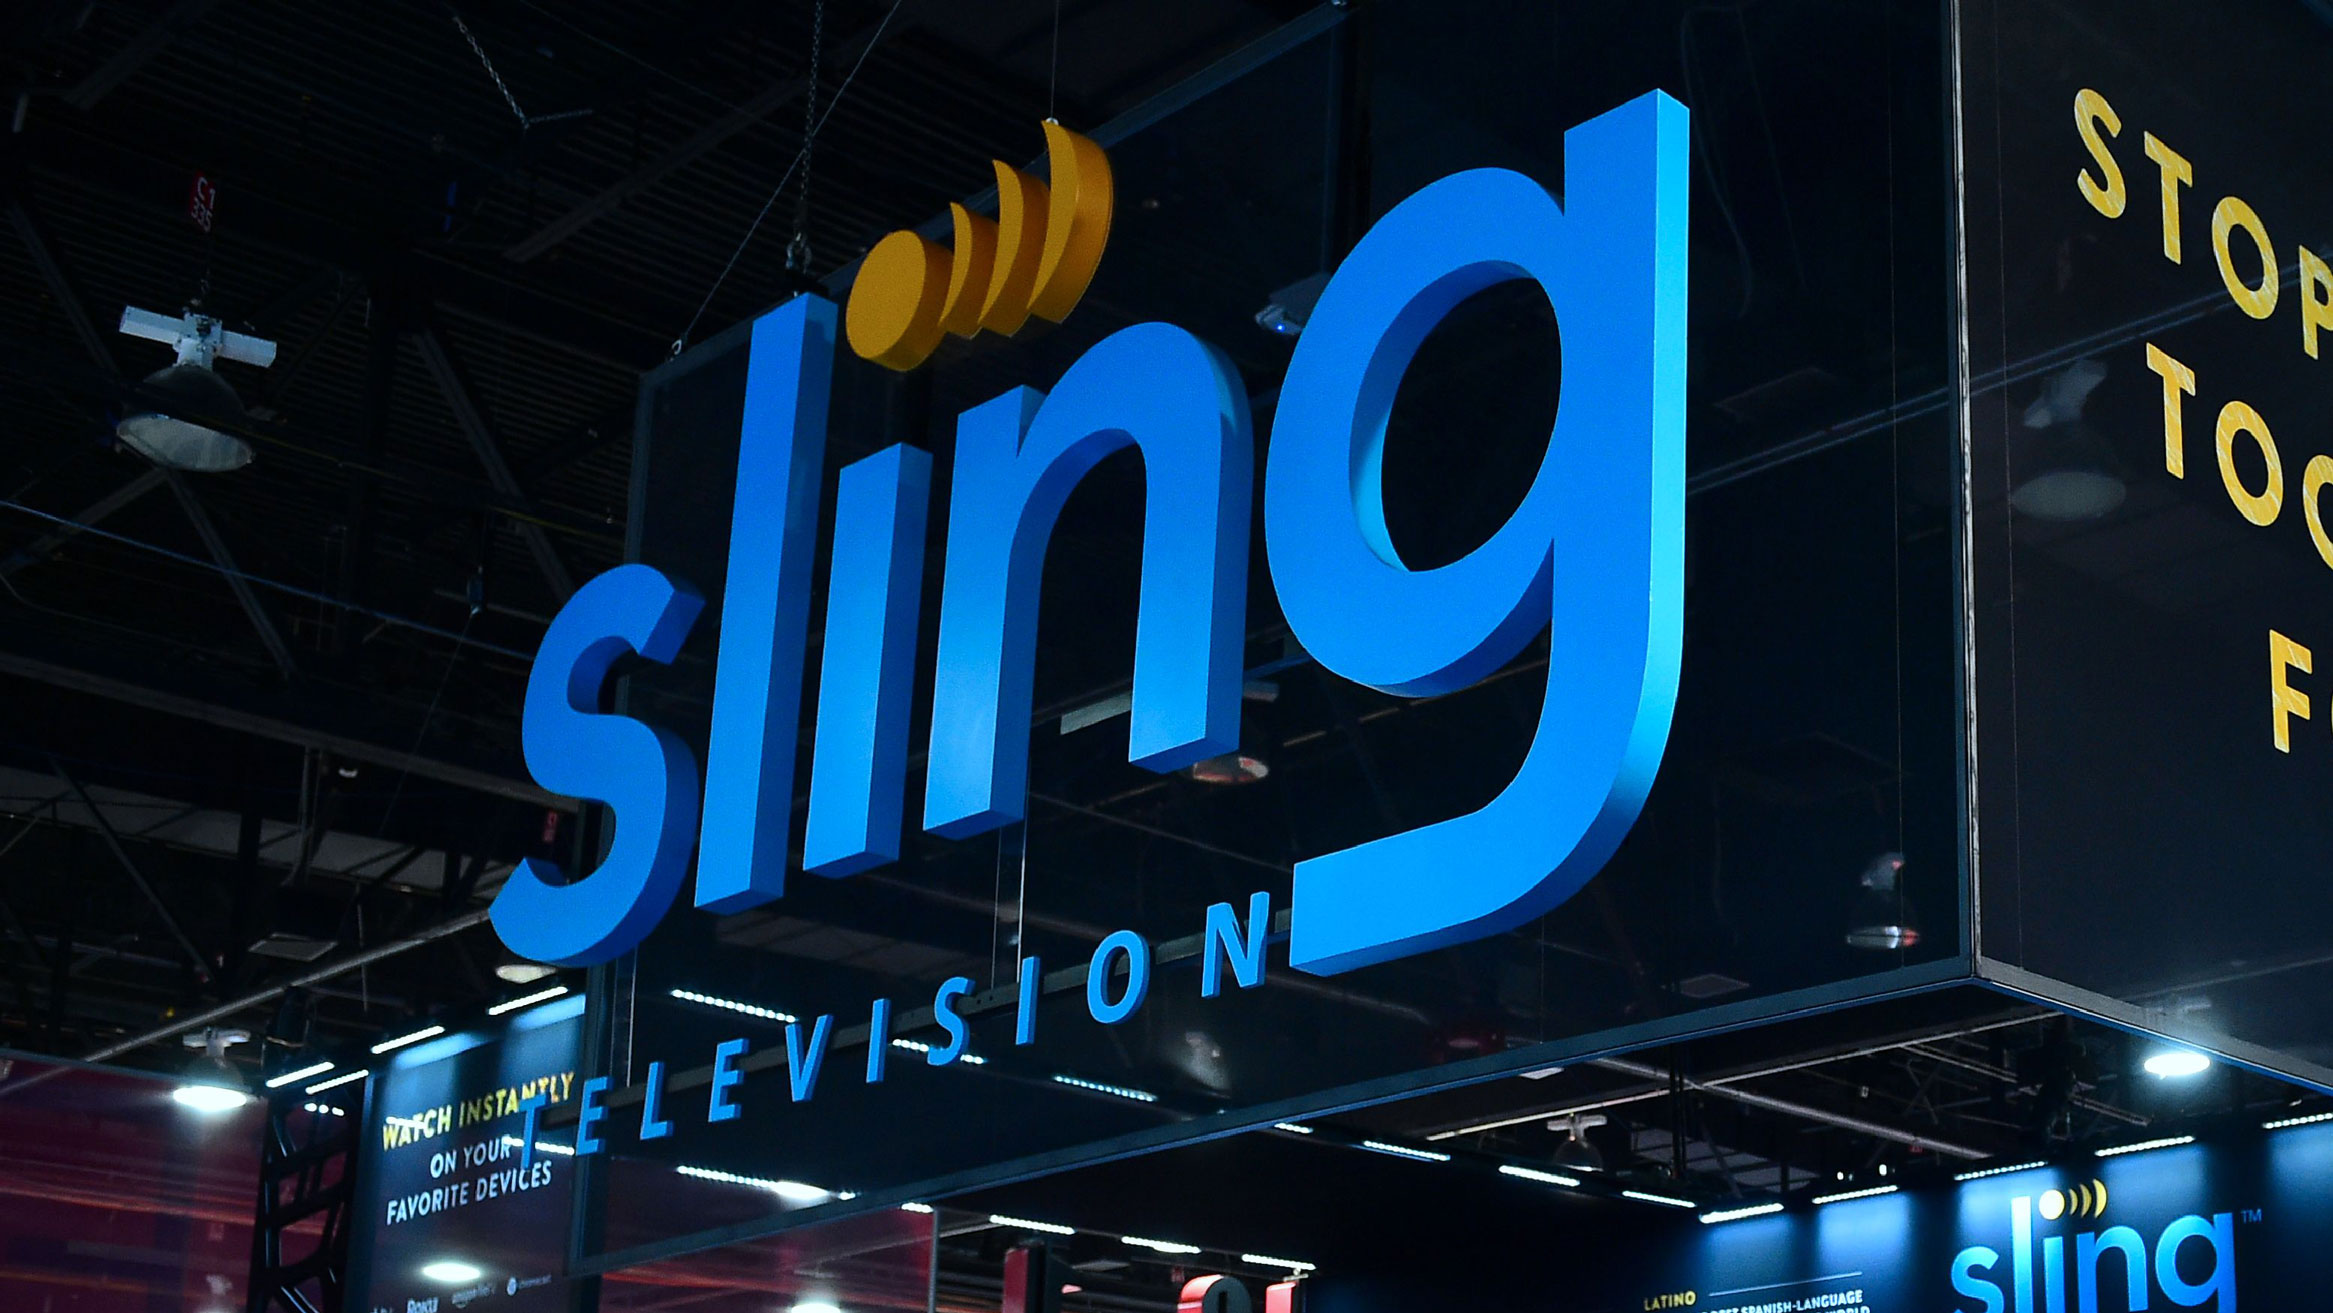 Sling Tv Rolls Out Free Streaming To Us Consumers Stuck At Home Techcrunch